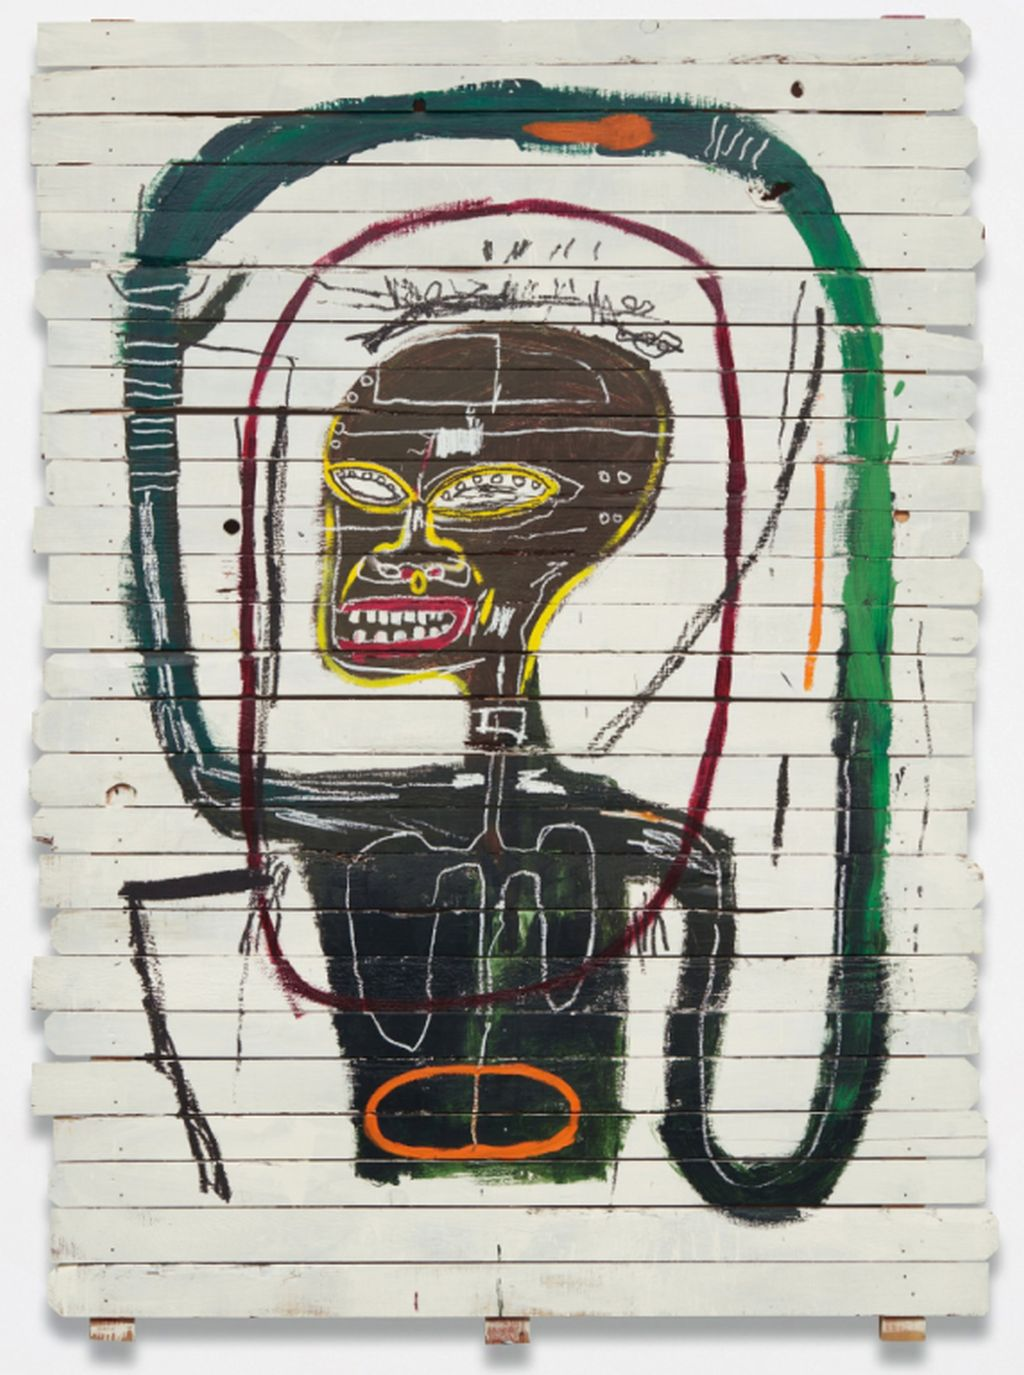 4 expensive painting by basquait sold at auction